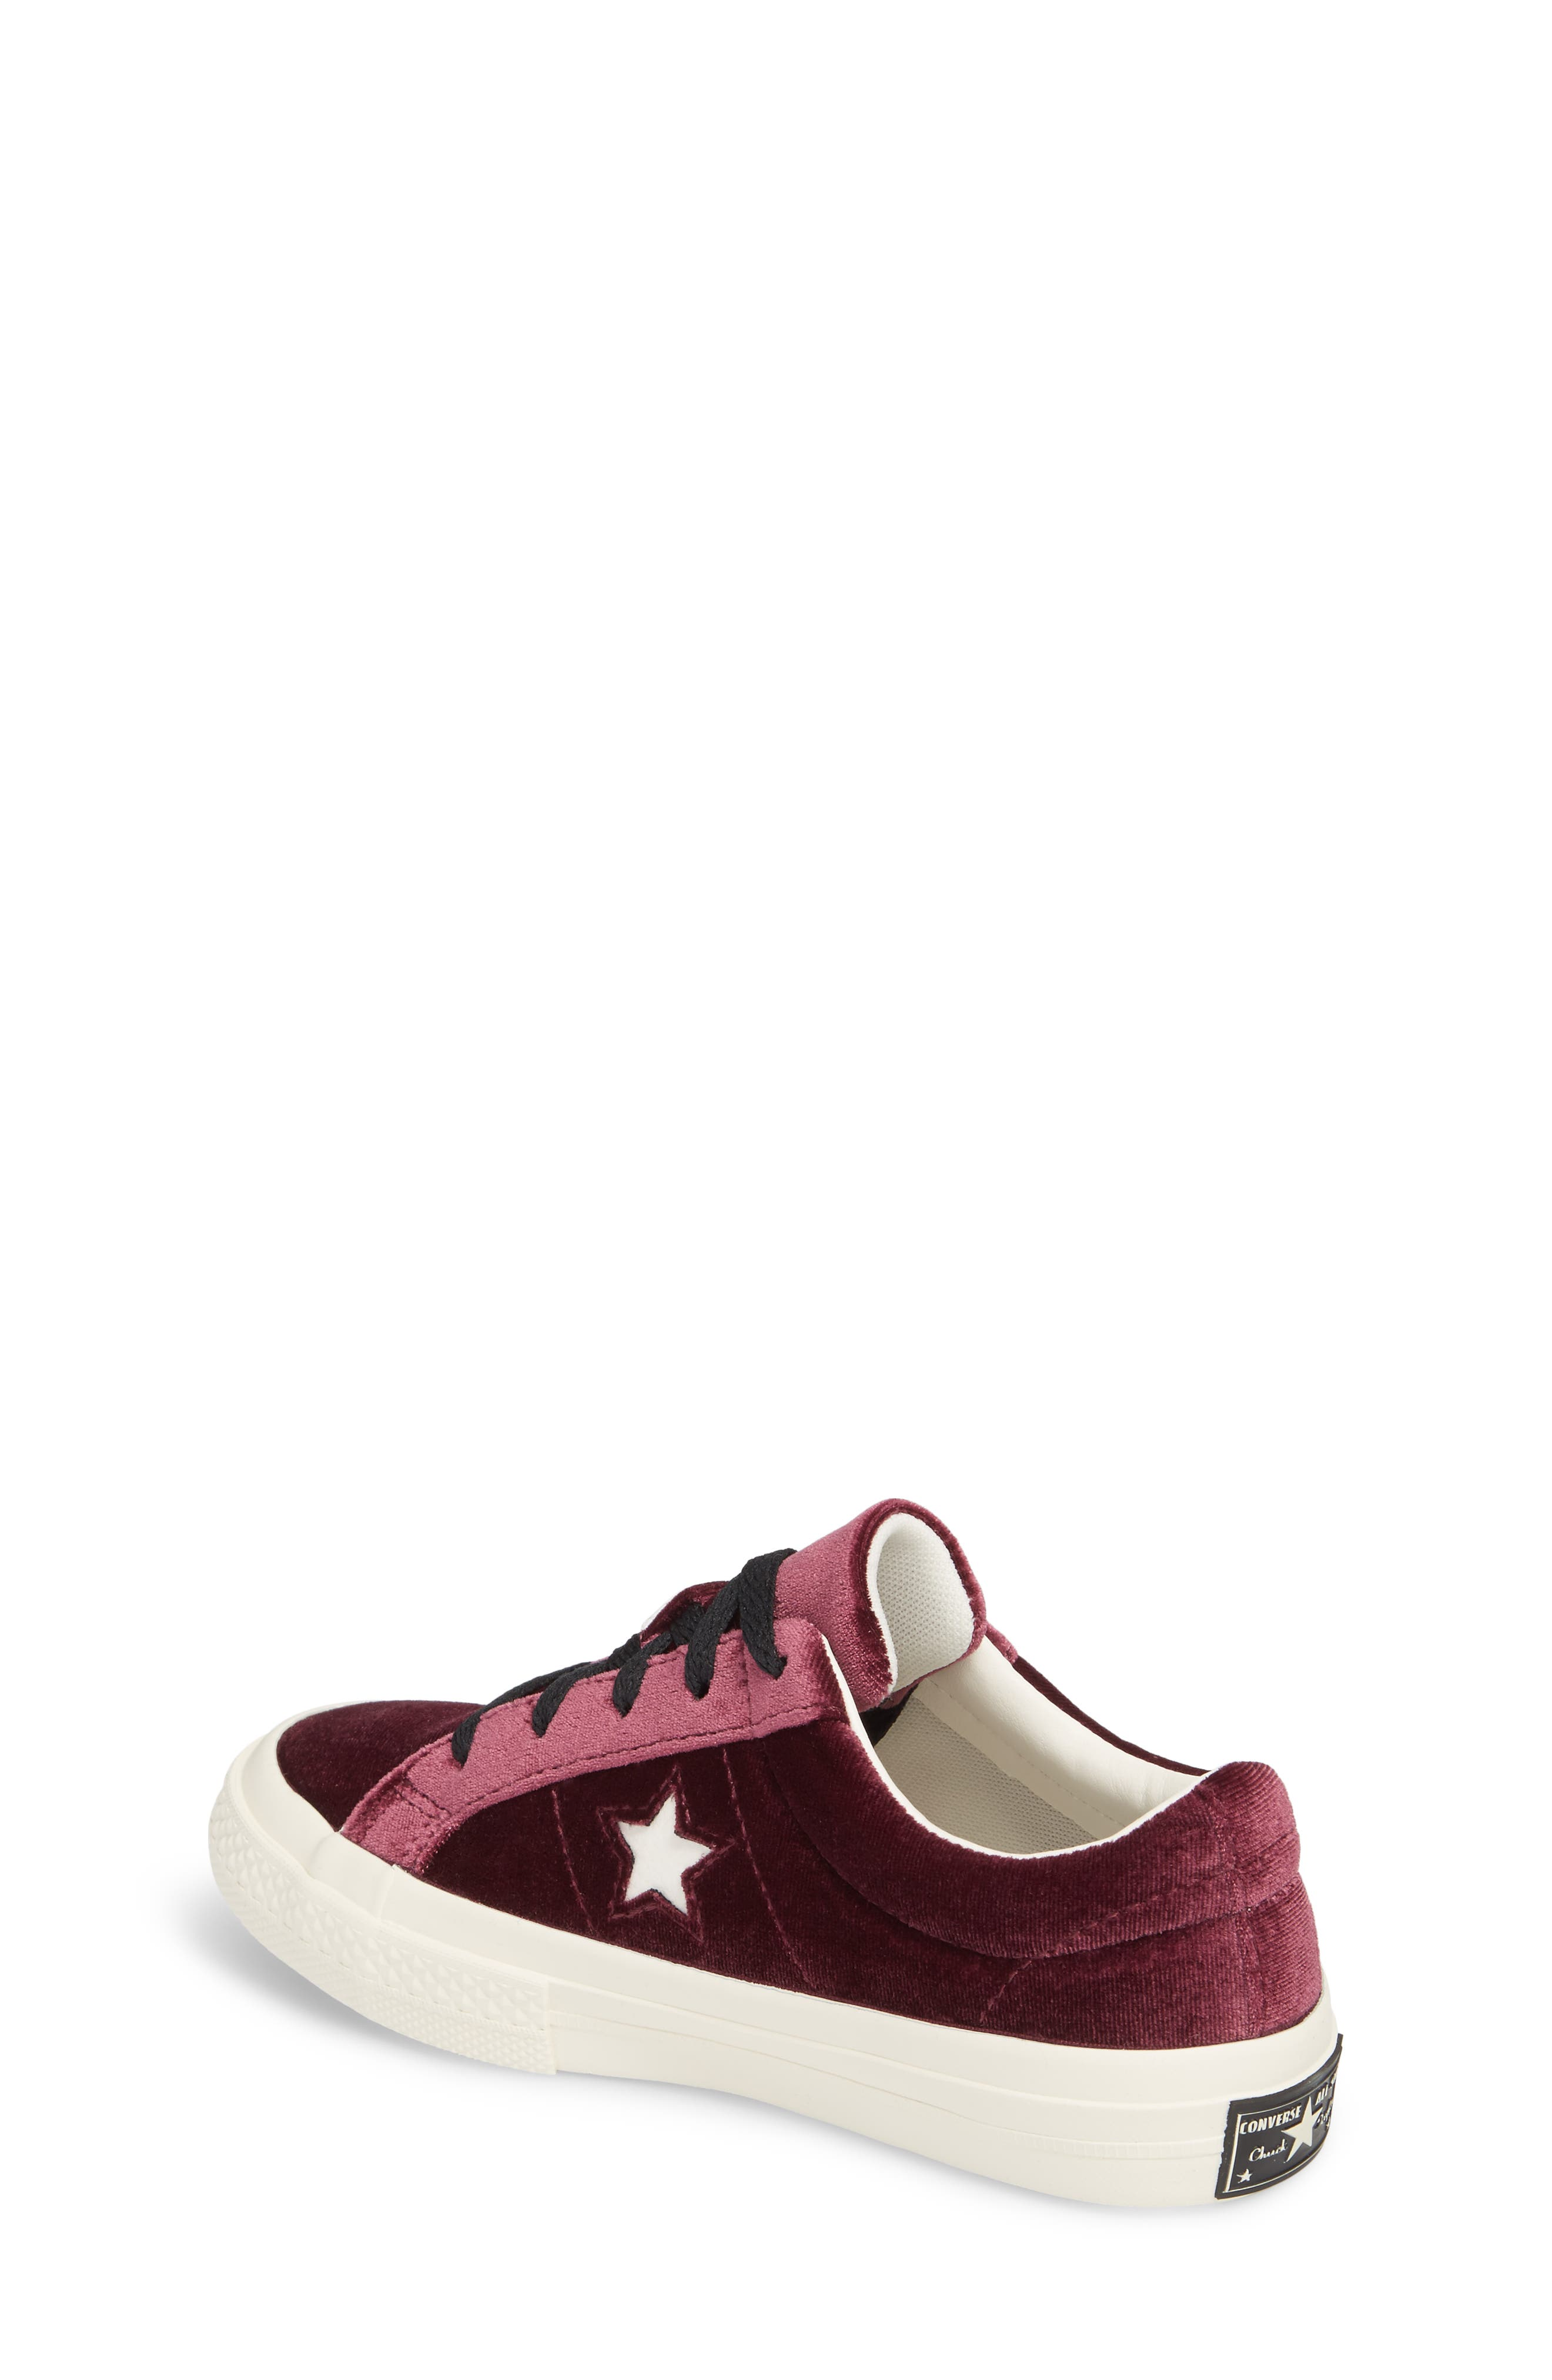 Chuck Taylor<sup>®</sup> All Star<sup>®</sup> One Star Velvet Platform Sneaker,                             Alternate thumbnail 6, color,